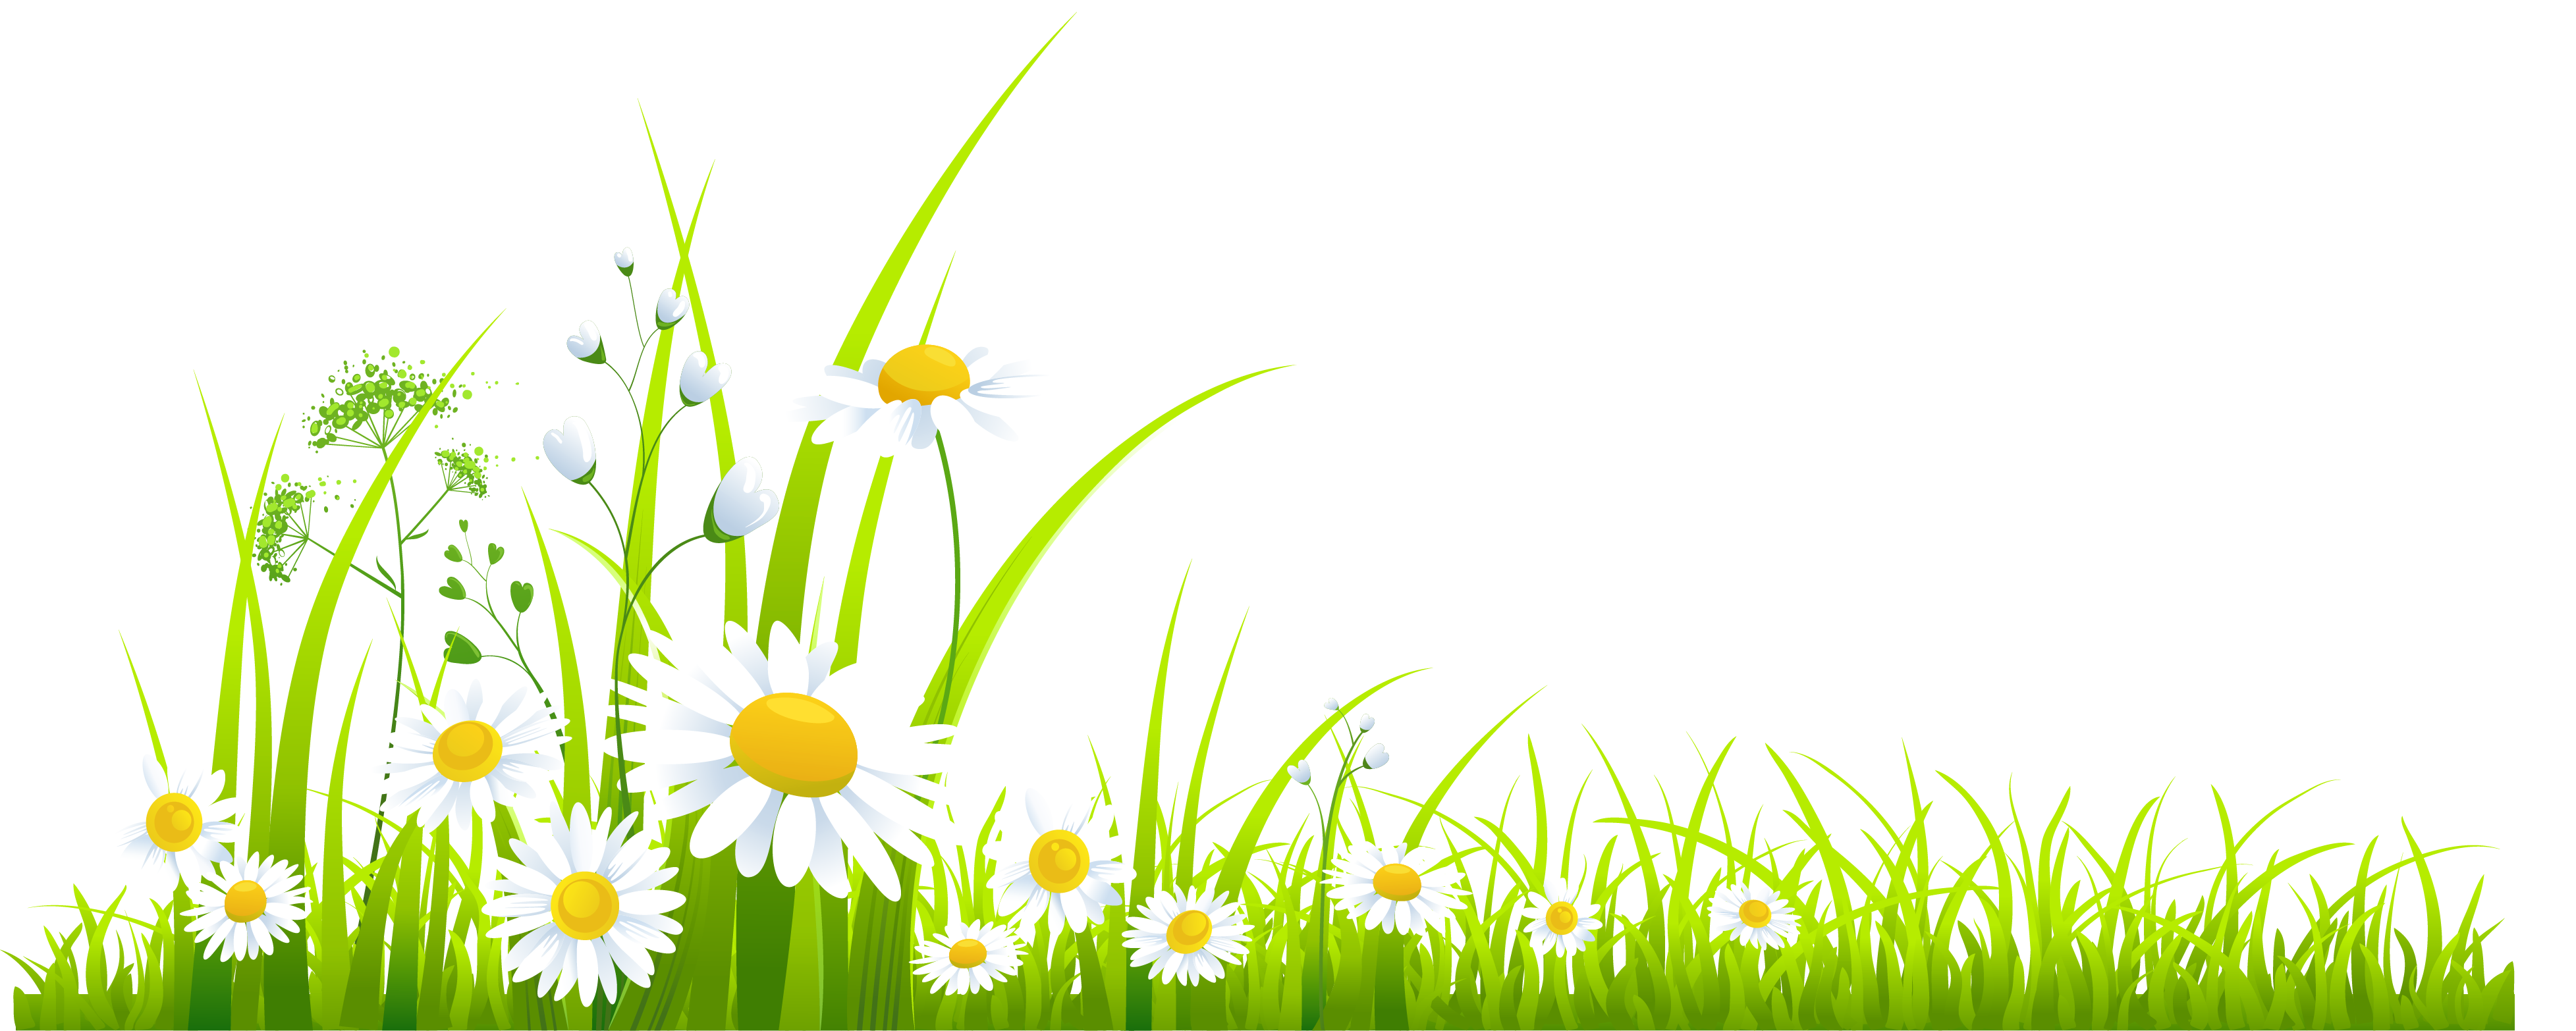 Spring clipart on free clipart clipart images - Clipartgo clipartlook.com